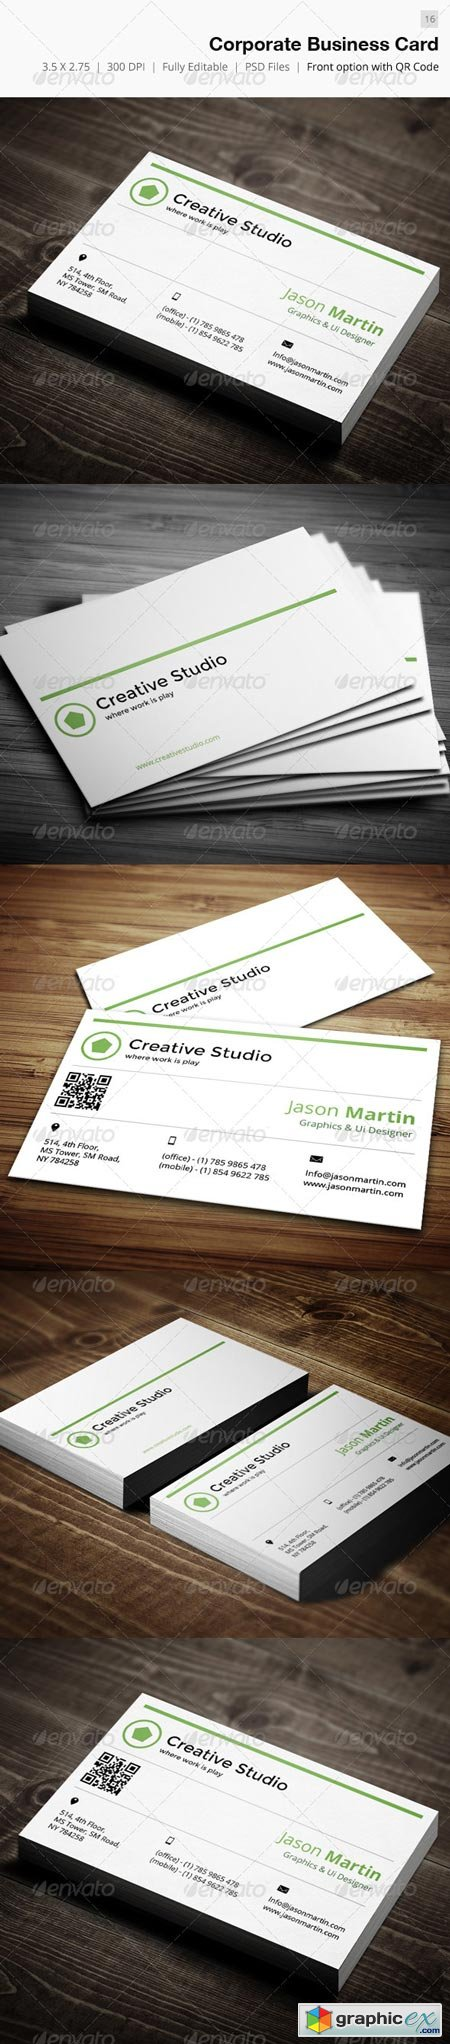 Corporate Business Card - 16 4600204